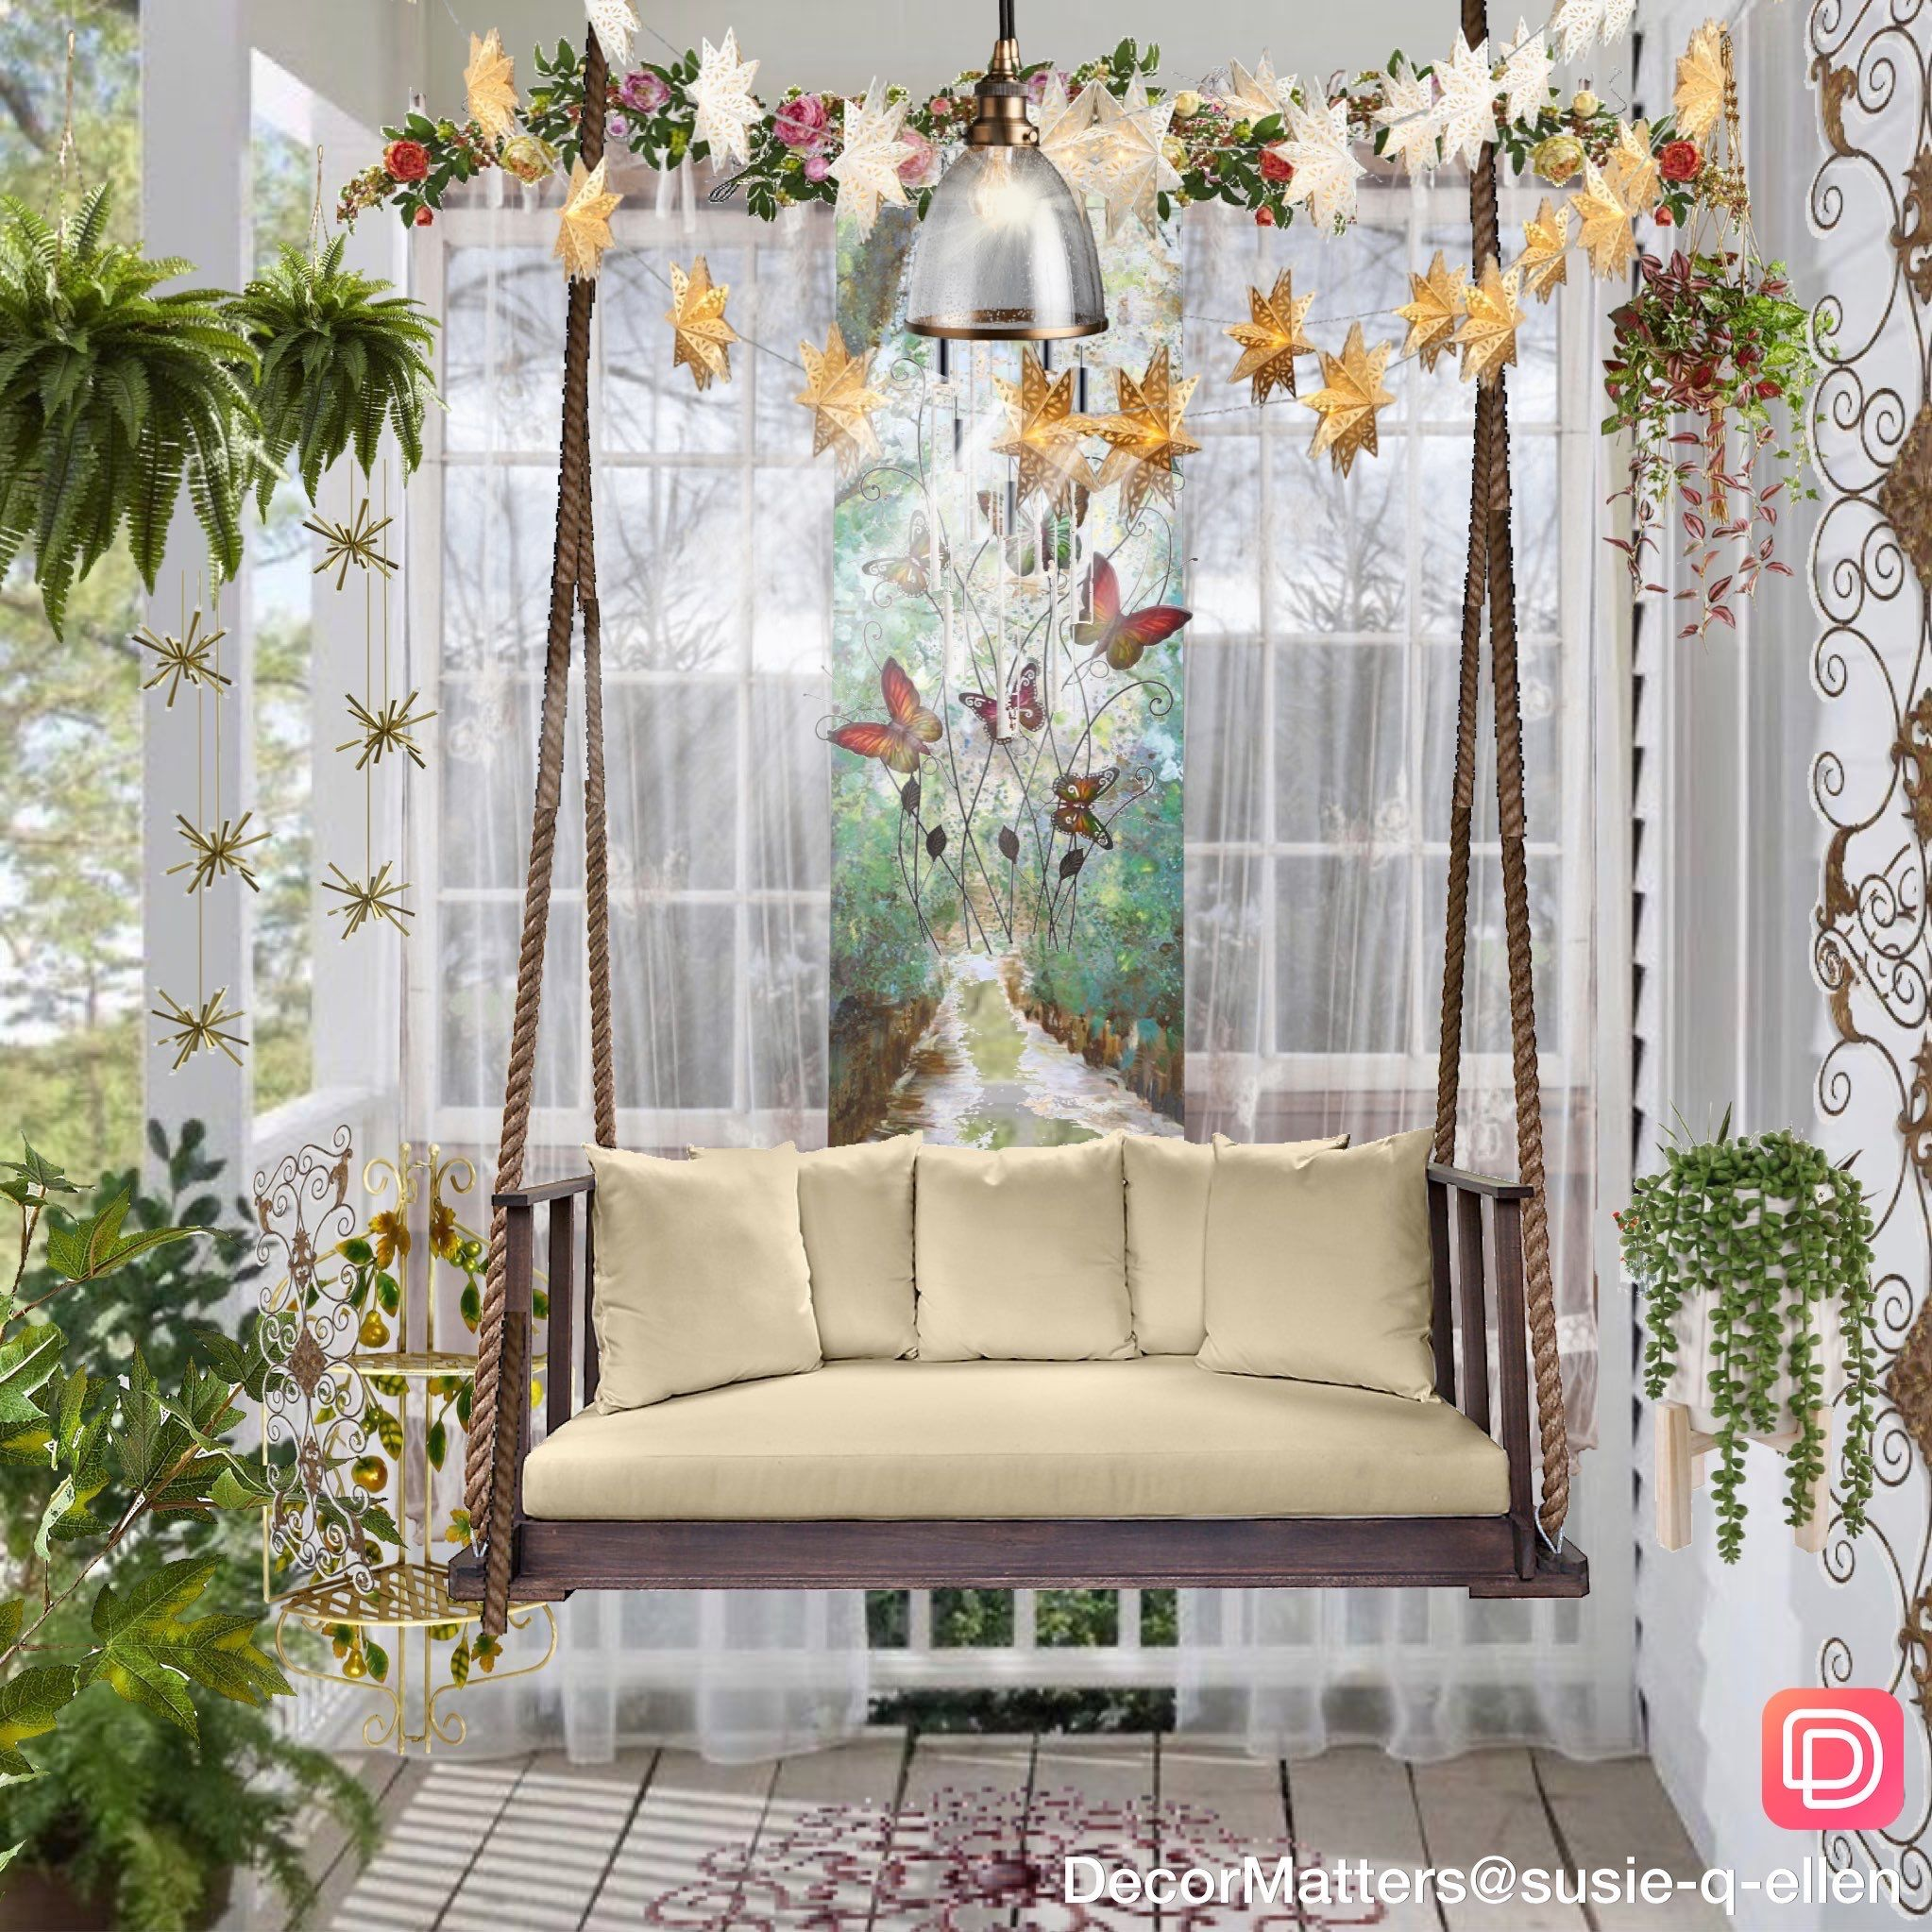 Cozy outdoor porch decor with hanging bench and plants everywhere! Created in the DecorMatters app. Click the image to try our free home design app.  (Keywords: interior design apps, room design app, free home decor app, dream rooms, dream house, house design, room ideas, home decor, design home, decormatters, decormatters app, decor matters, home decor ideas, DIY home decor, positive vibes, positive thoughts)